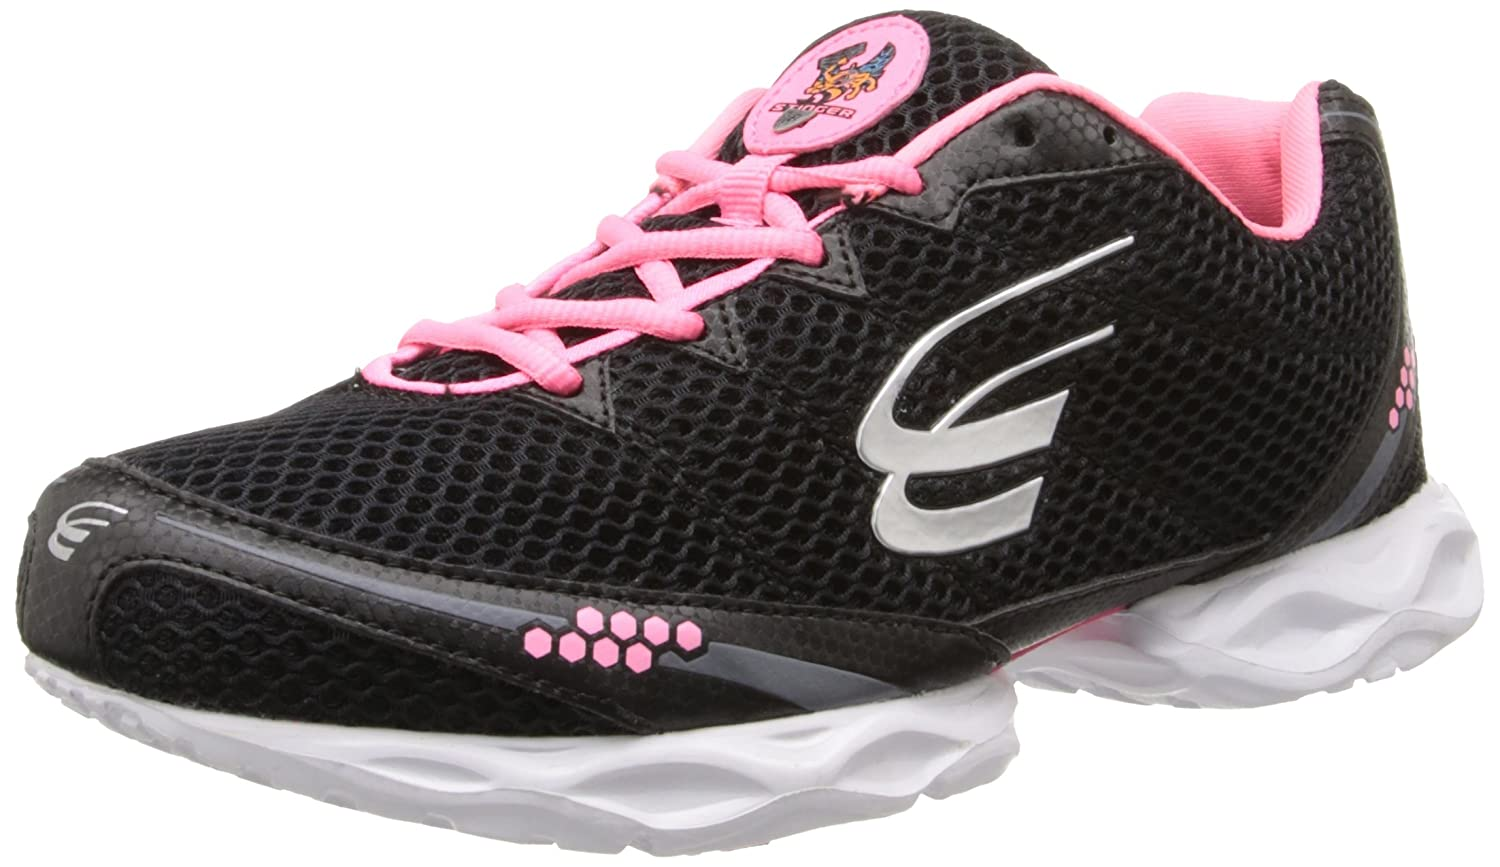 Spira Women's Stinger 3 Running Shoe B00FYKSFTY 6.5 B(M) US|Black/Blush